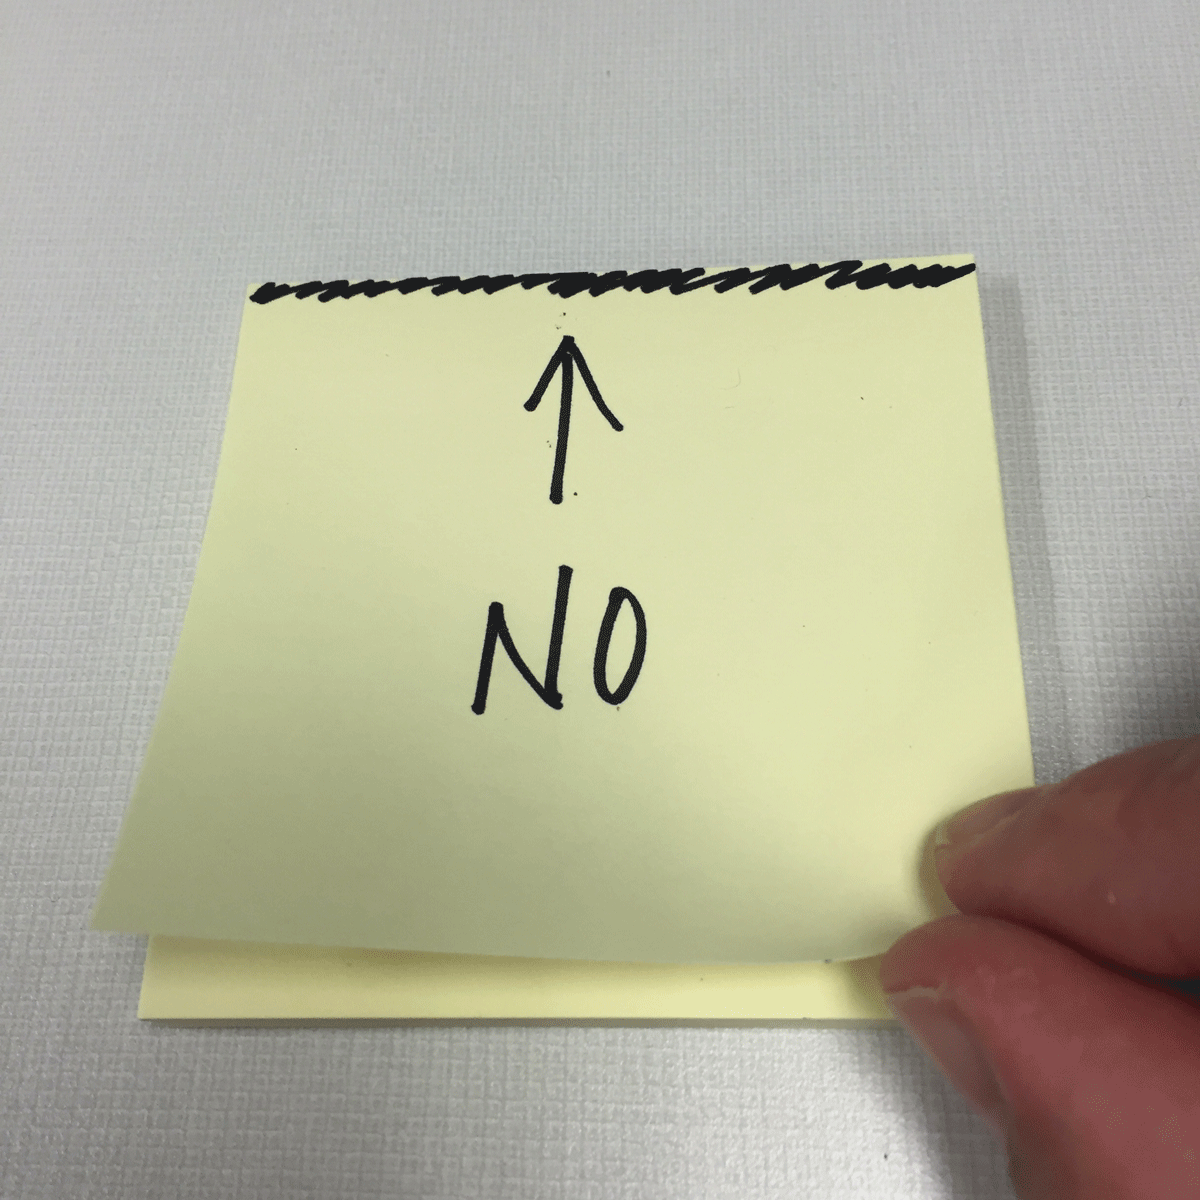 The wrong way to peel post-it notes